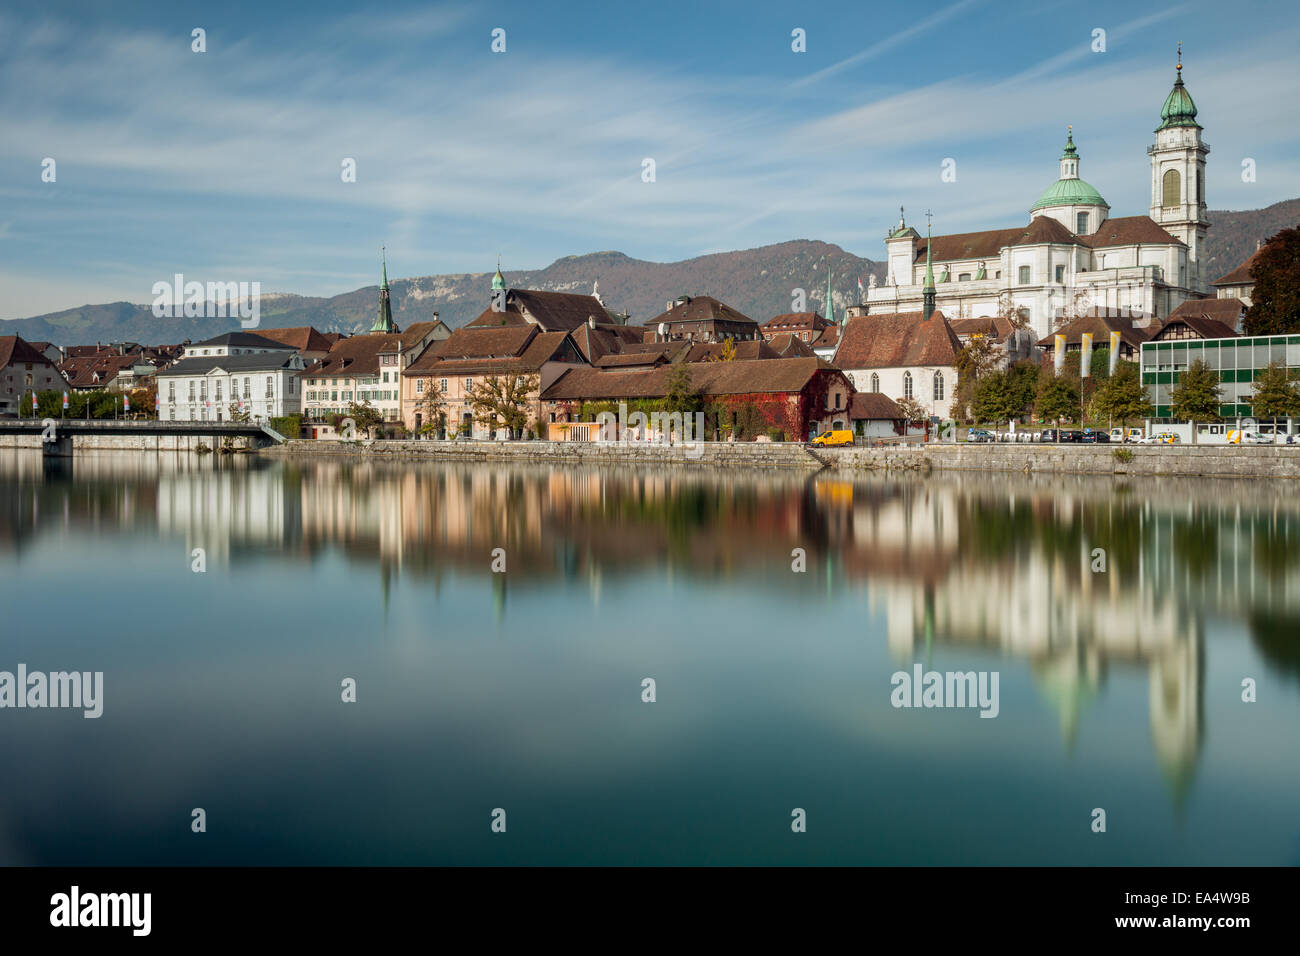 Solothurn old town on Aare river, Switzerland - Stock Image